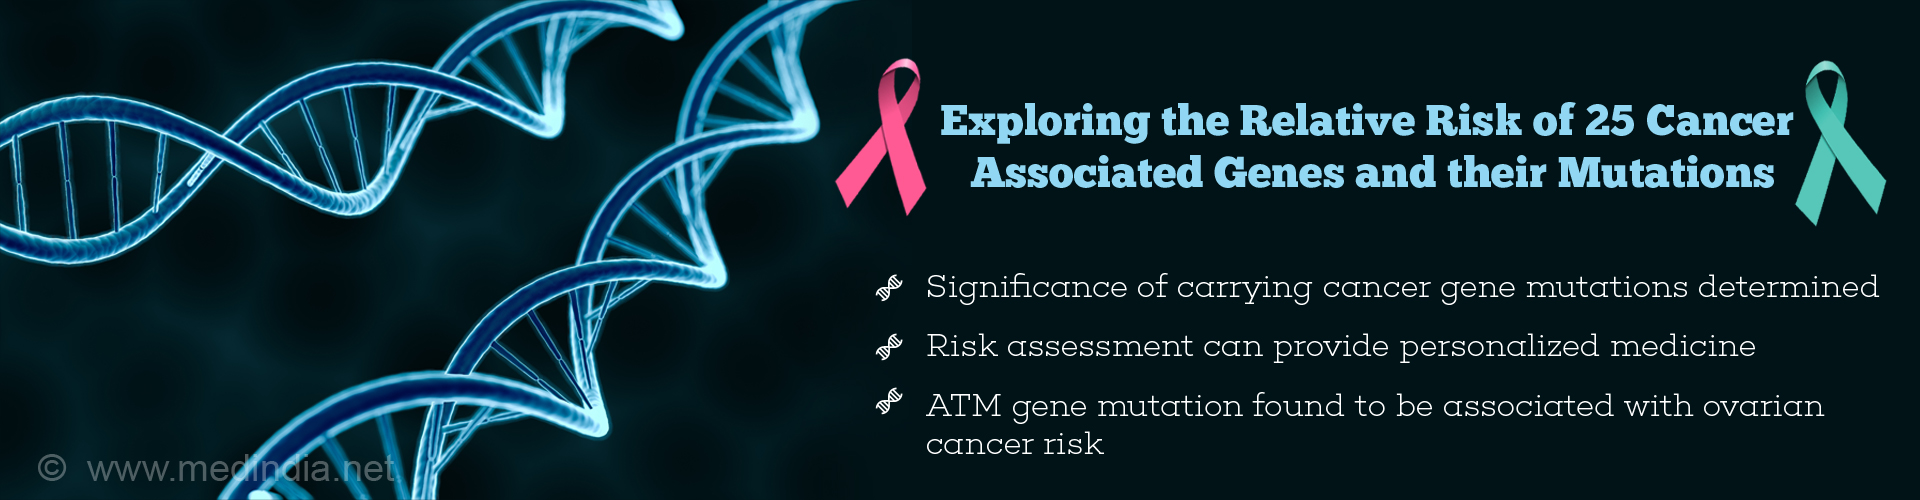 Stanford Scientists Identify Relative Risk of 25 Cancer Associated Genes